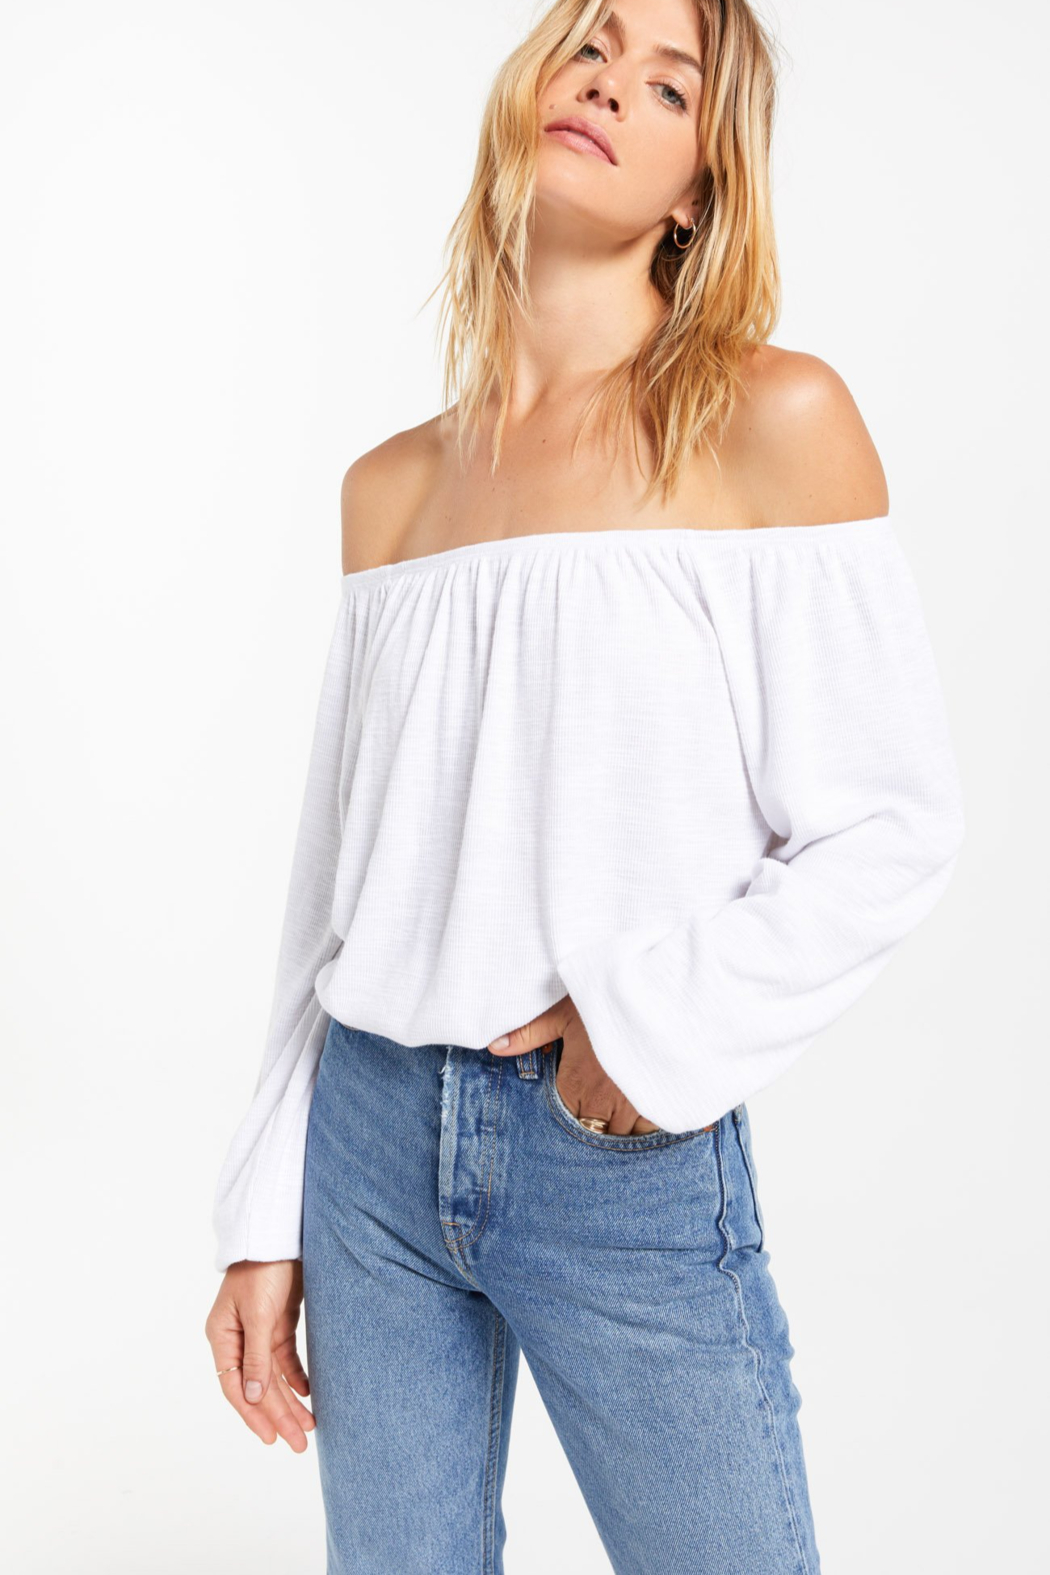 z supply Liv Slub Off Shoulder Top - Front Full Image